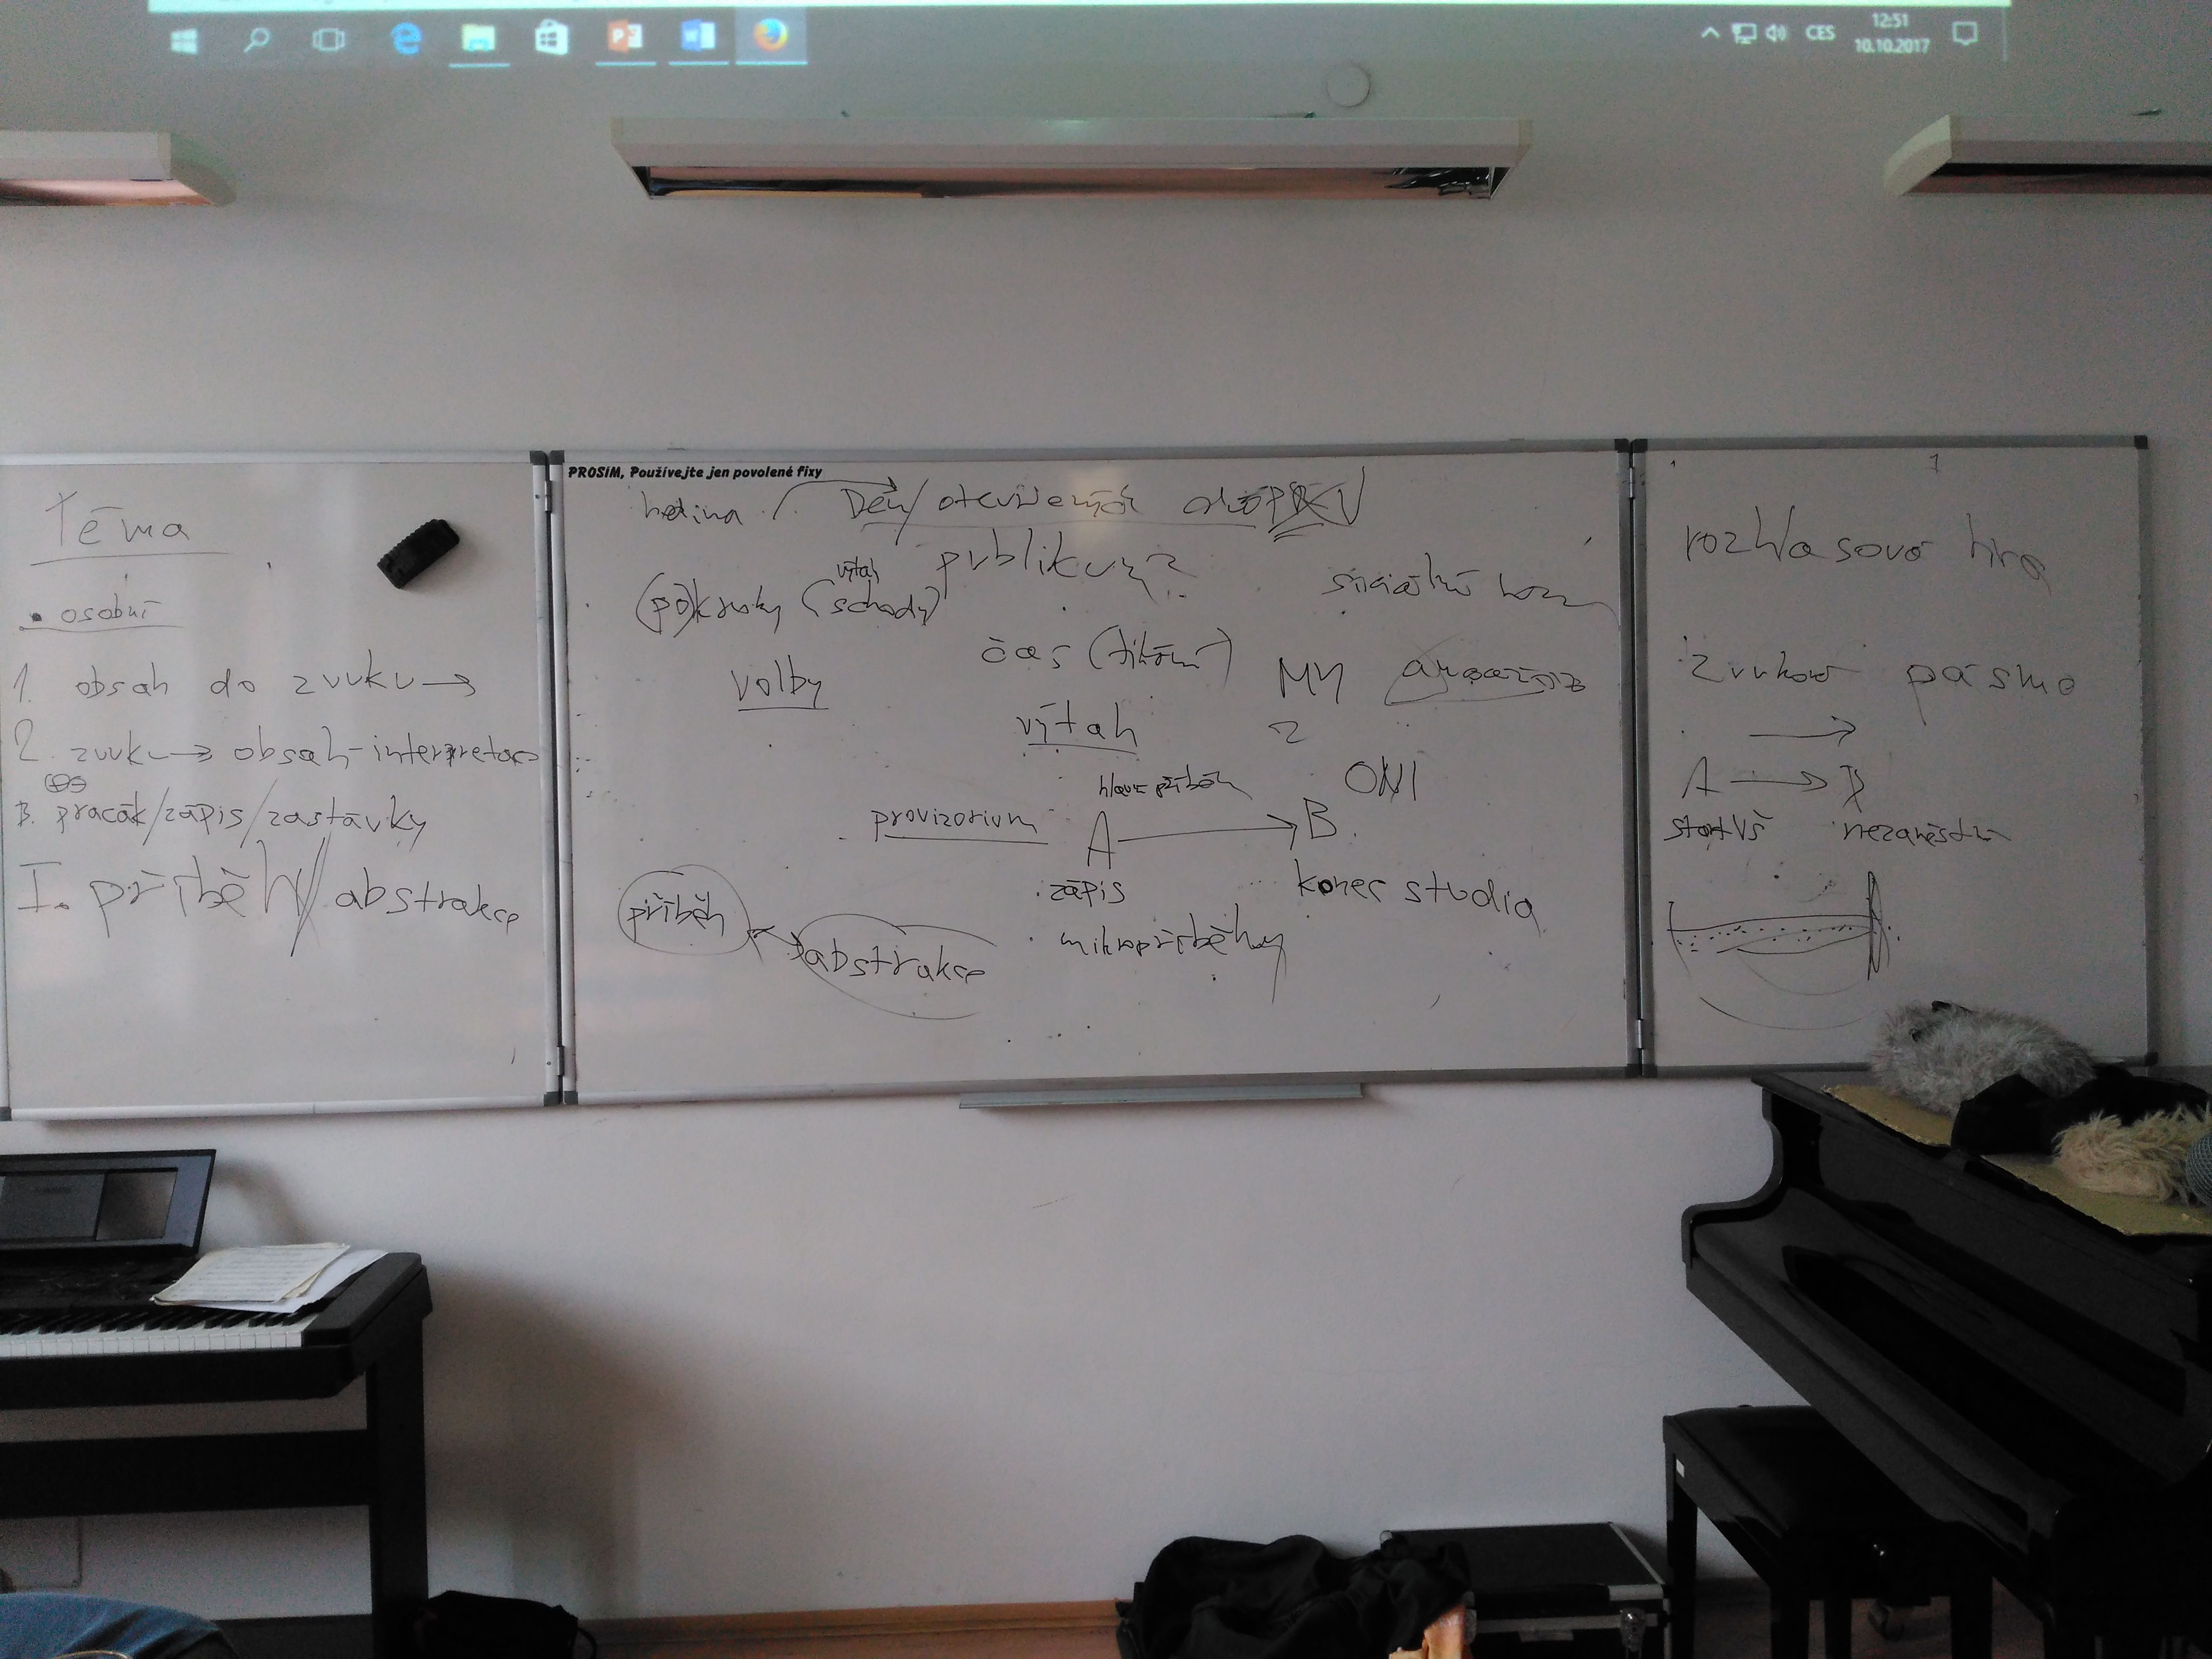 johanek_pf_thoughts_and_topic_photo-whiteboard